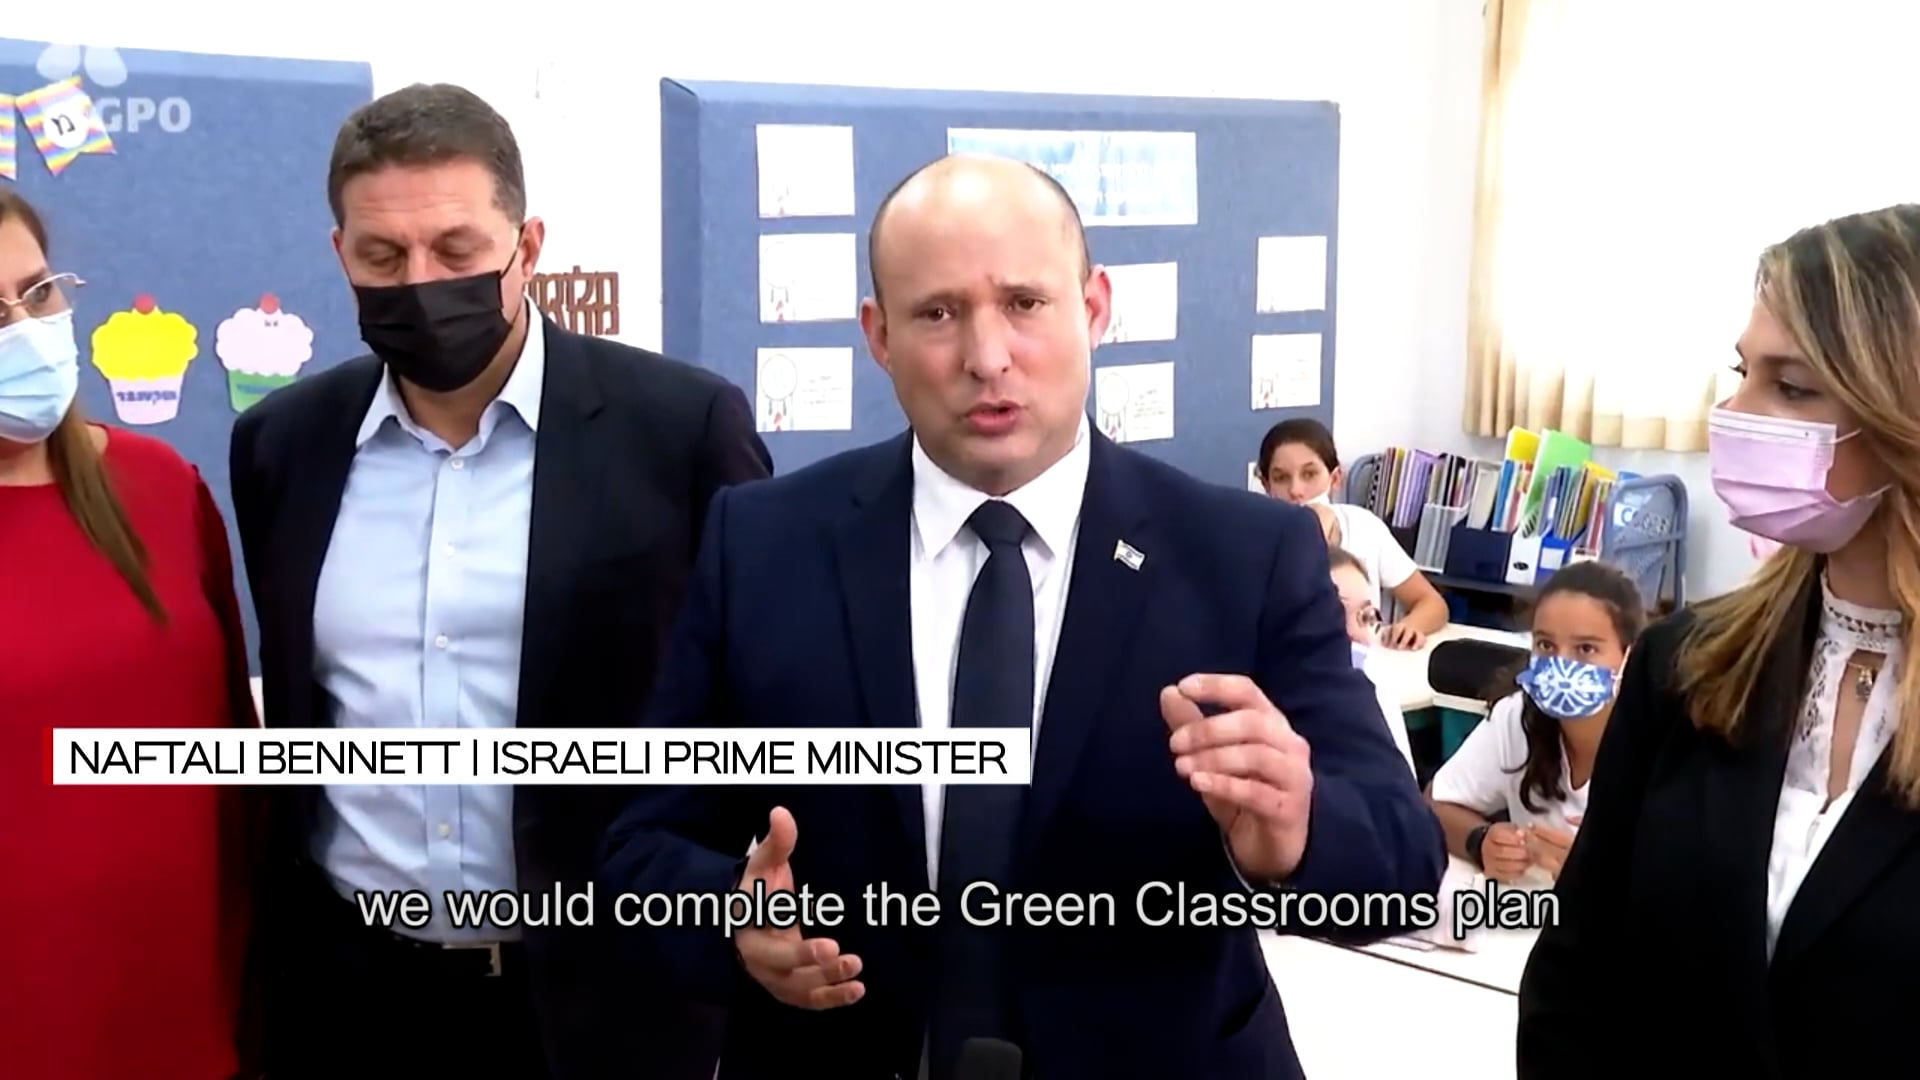 Green-classroom plan put into action